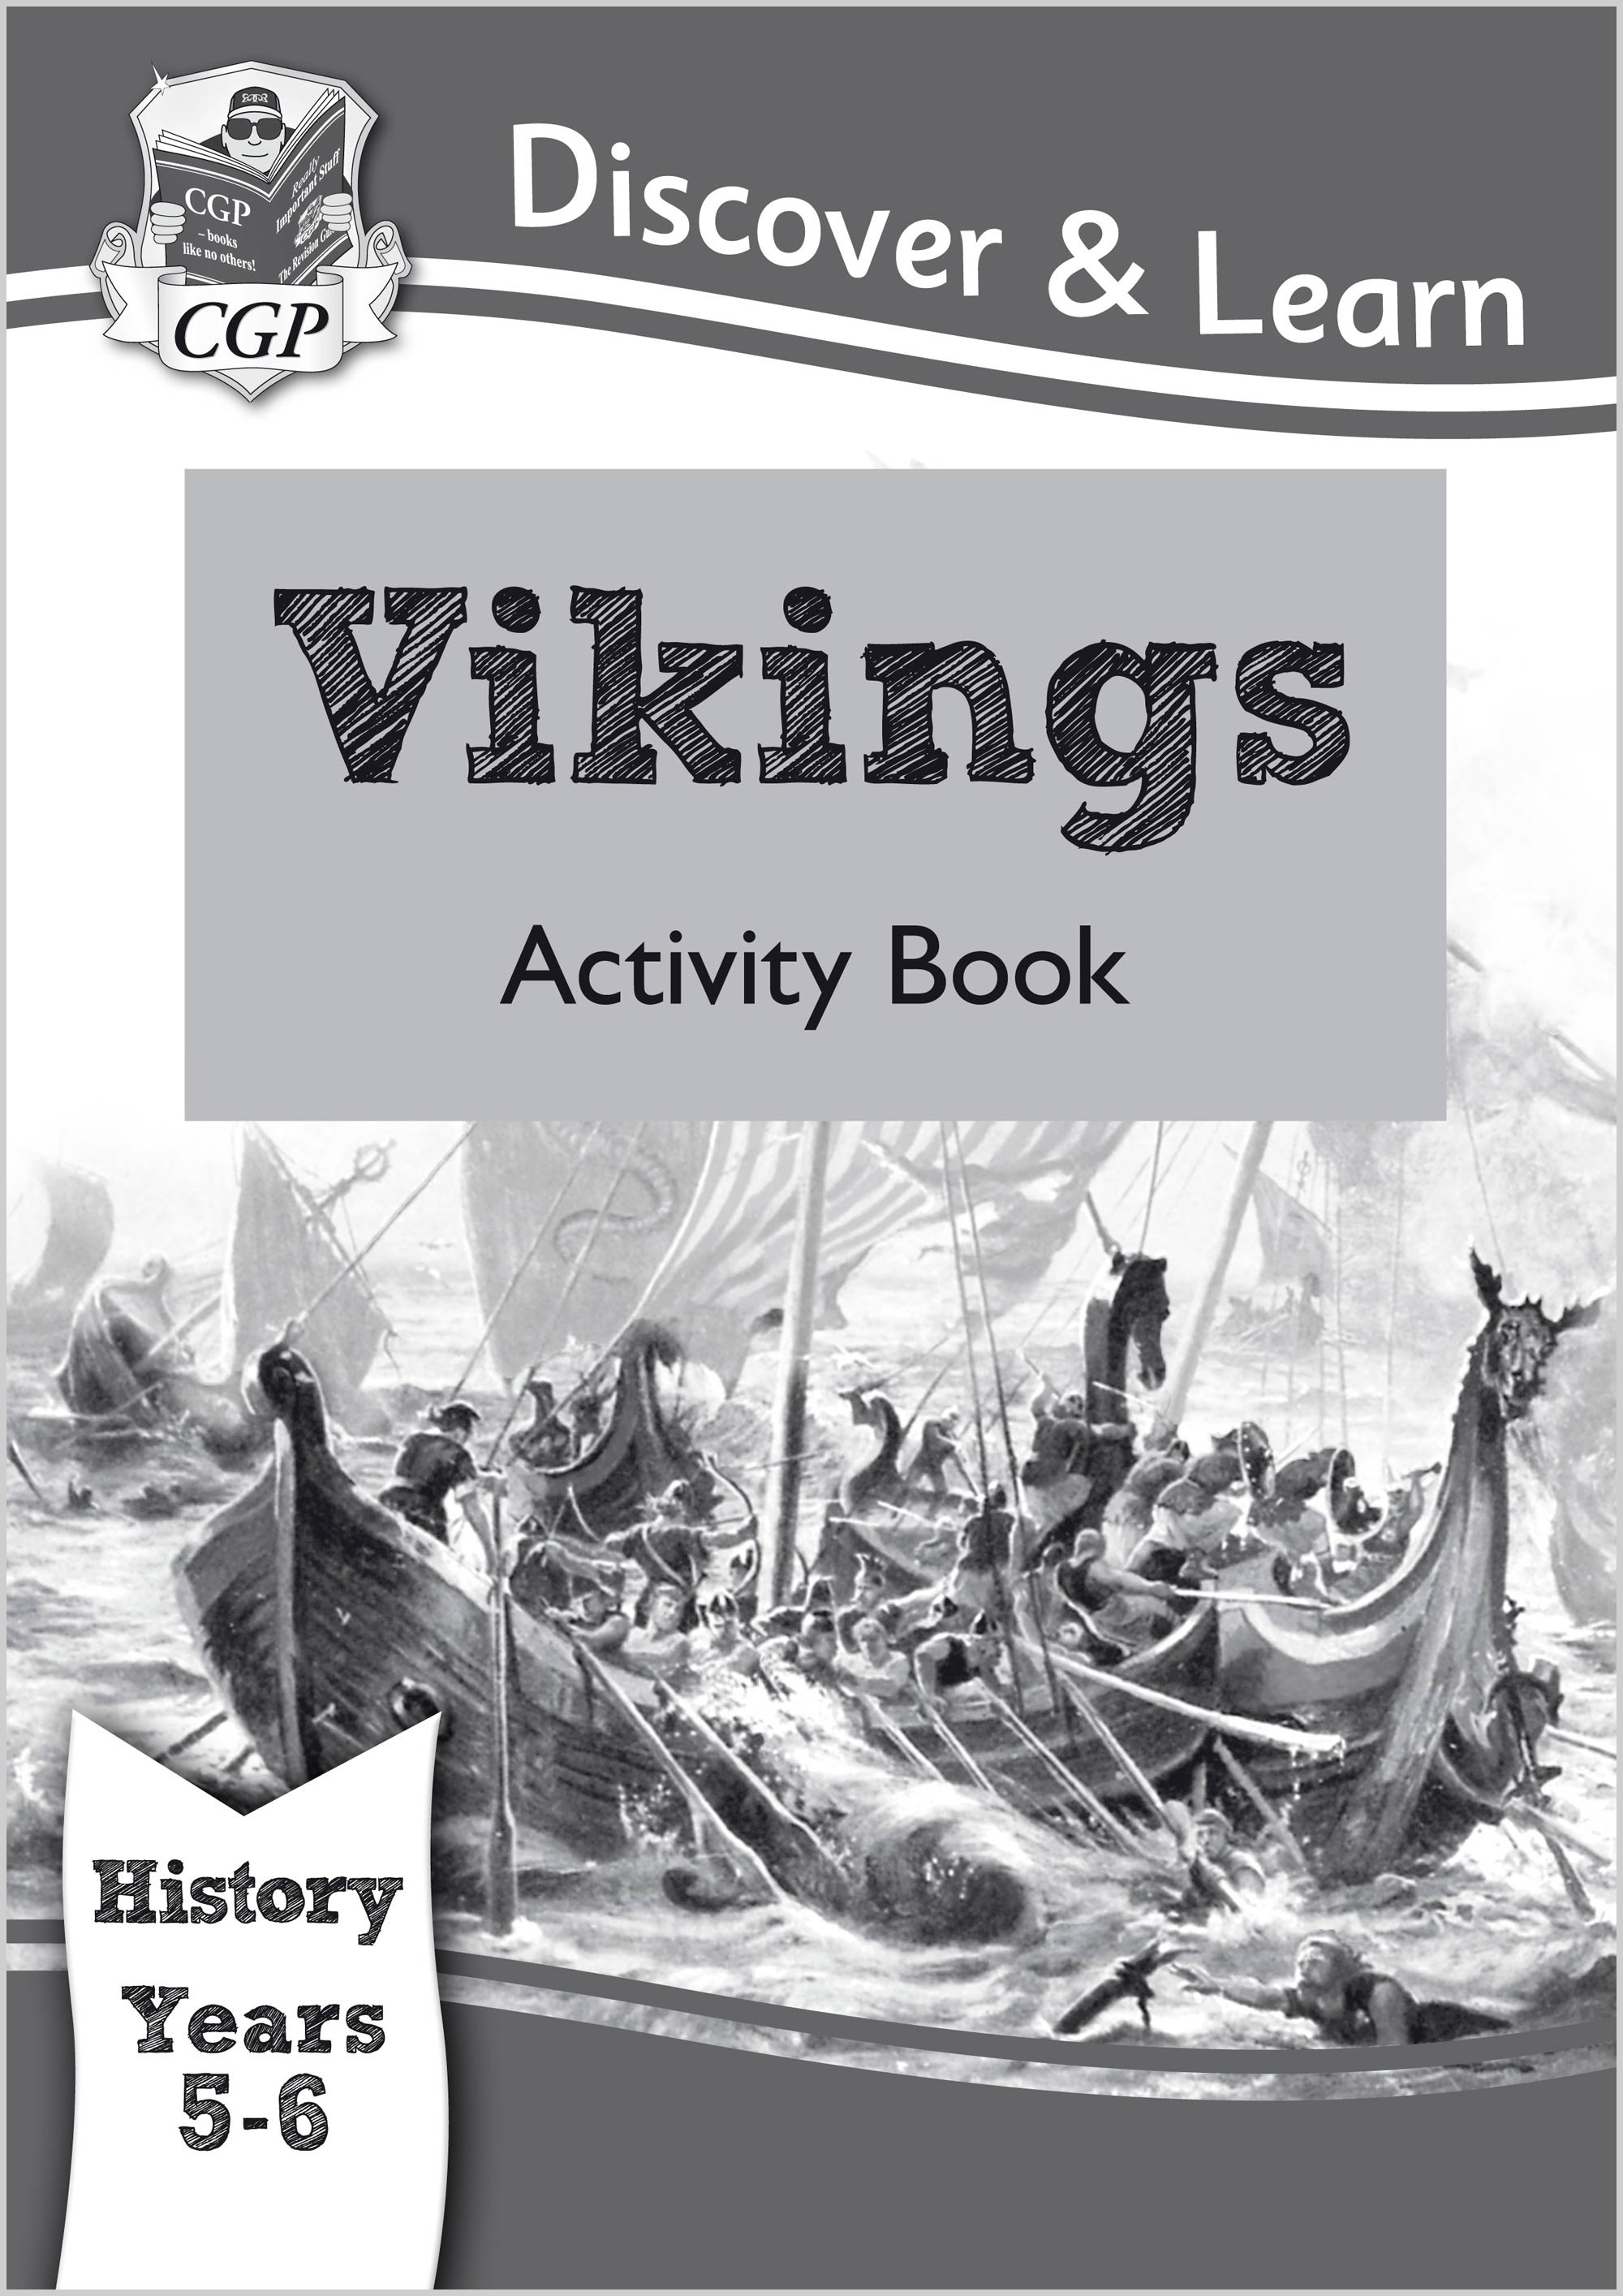 HVW22 - KS2 Discover & Learn: History - Vikings Activity Book, Year 5 & 6